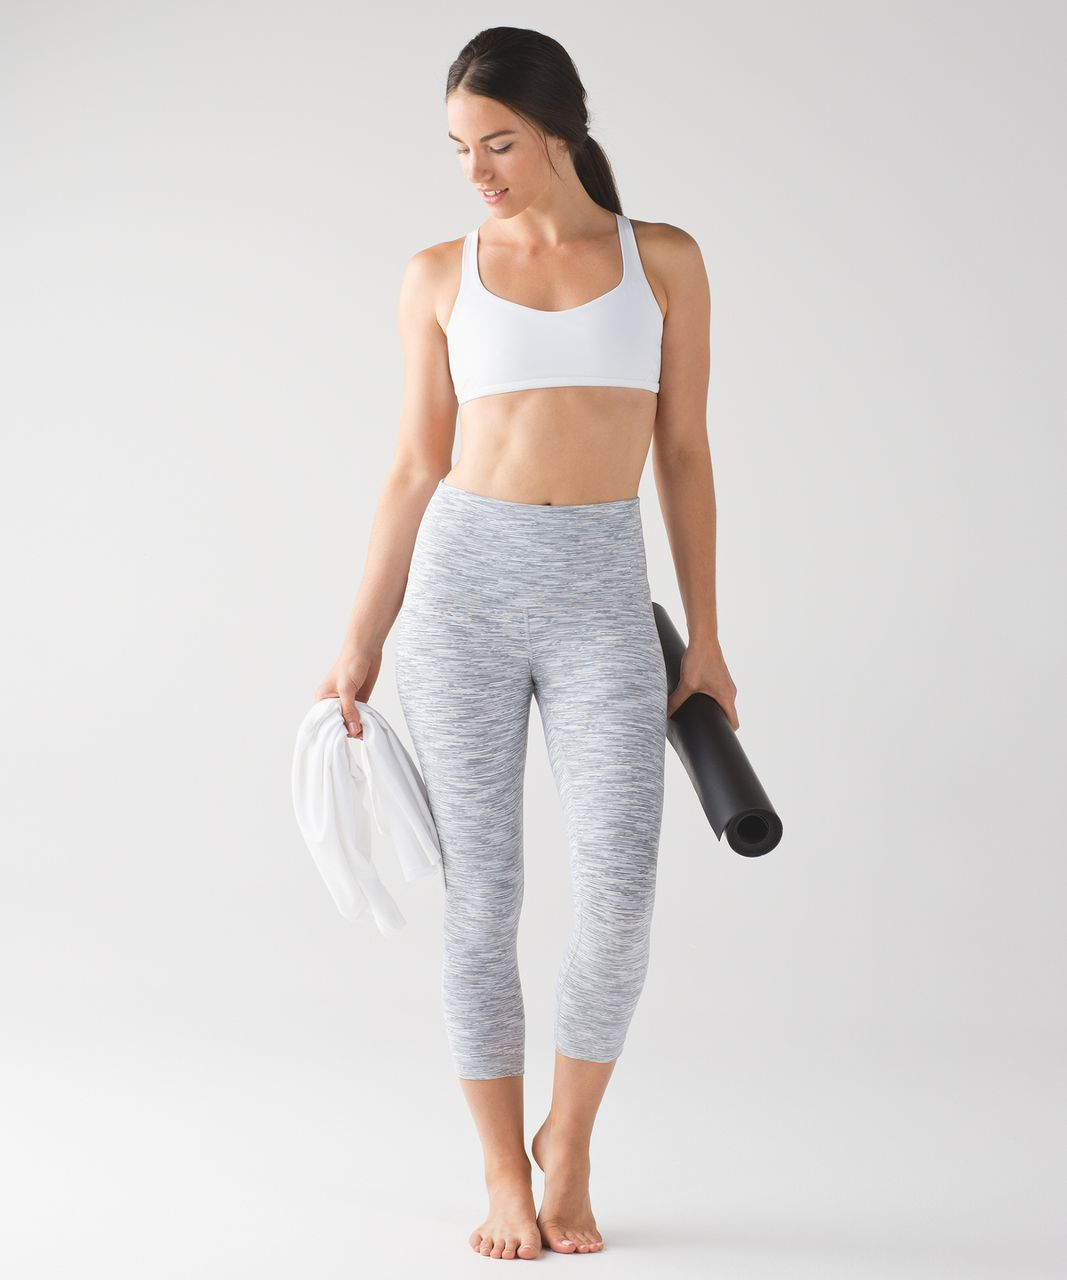 "Lululemon Wunder Under Crop (Hi-Rise) (21 1/2"") - Wee Are From Space Ice Grey Alpine White"